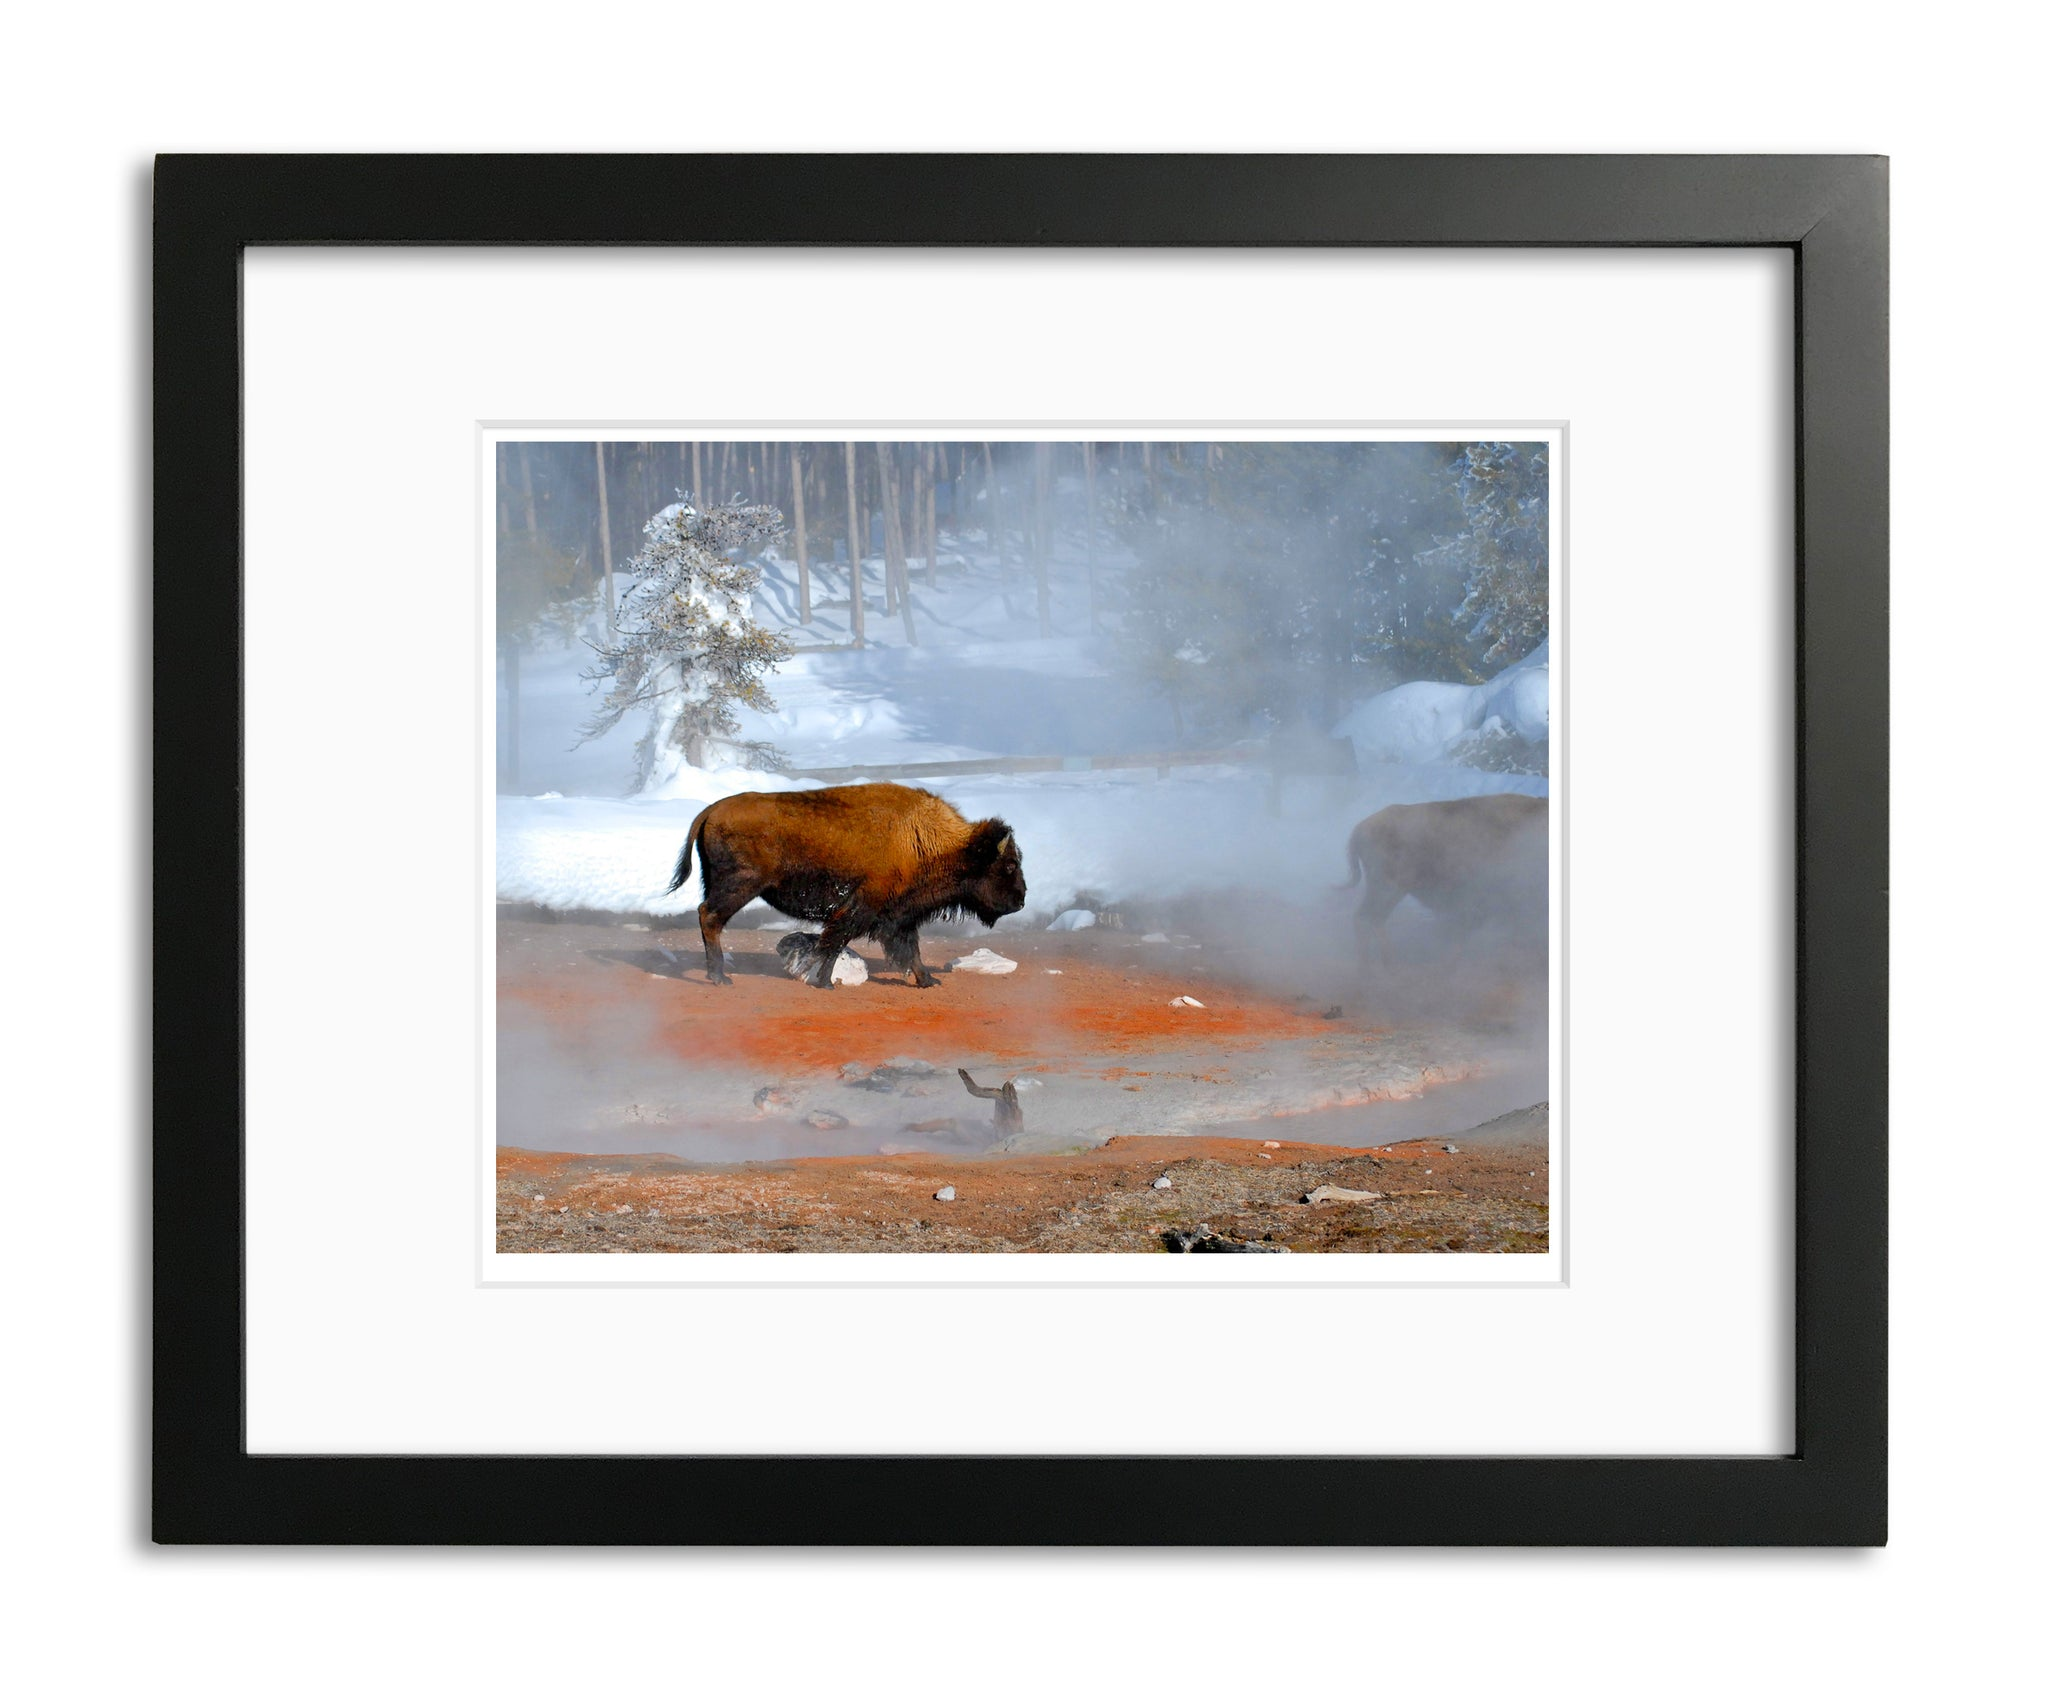 Moment in Time, American Bison, by Robert Ross